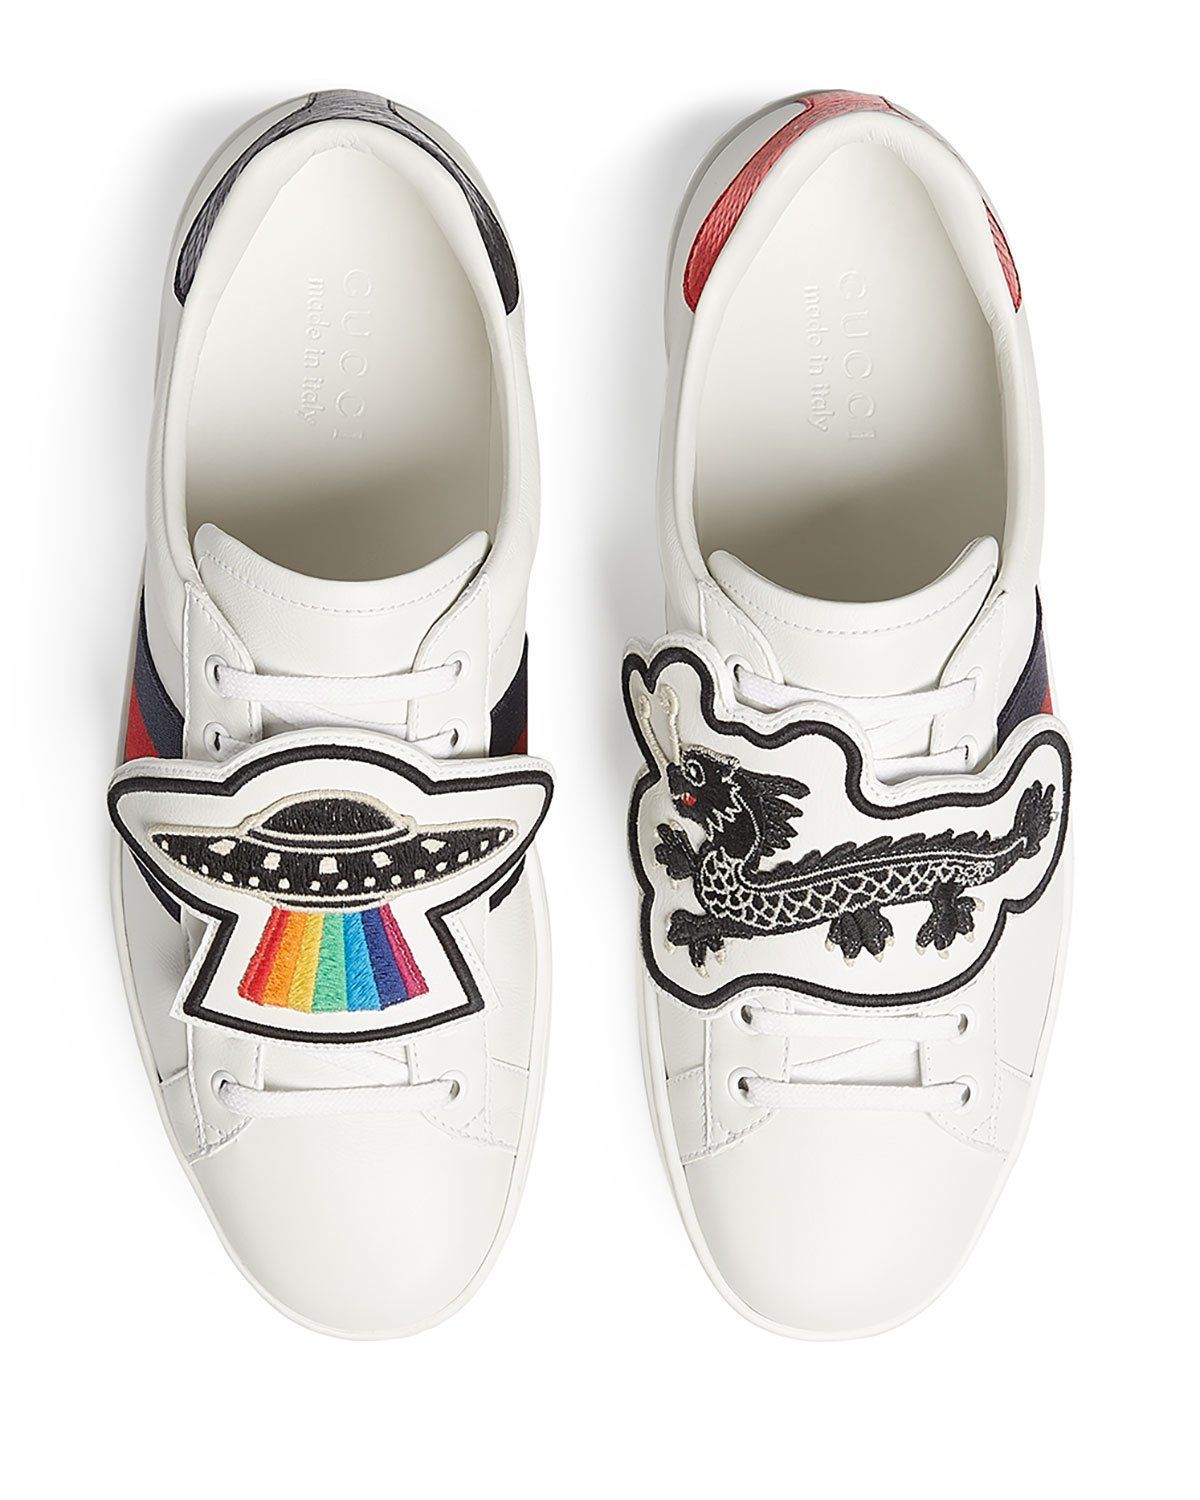 6061d2a6e Gucci Men's New Ace Leather Low-Top Sneakers with Removable Embroideries